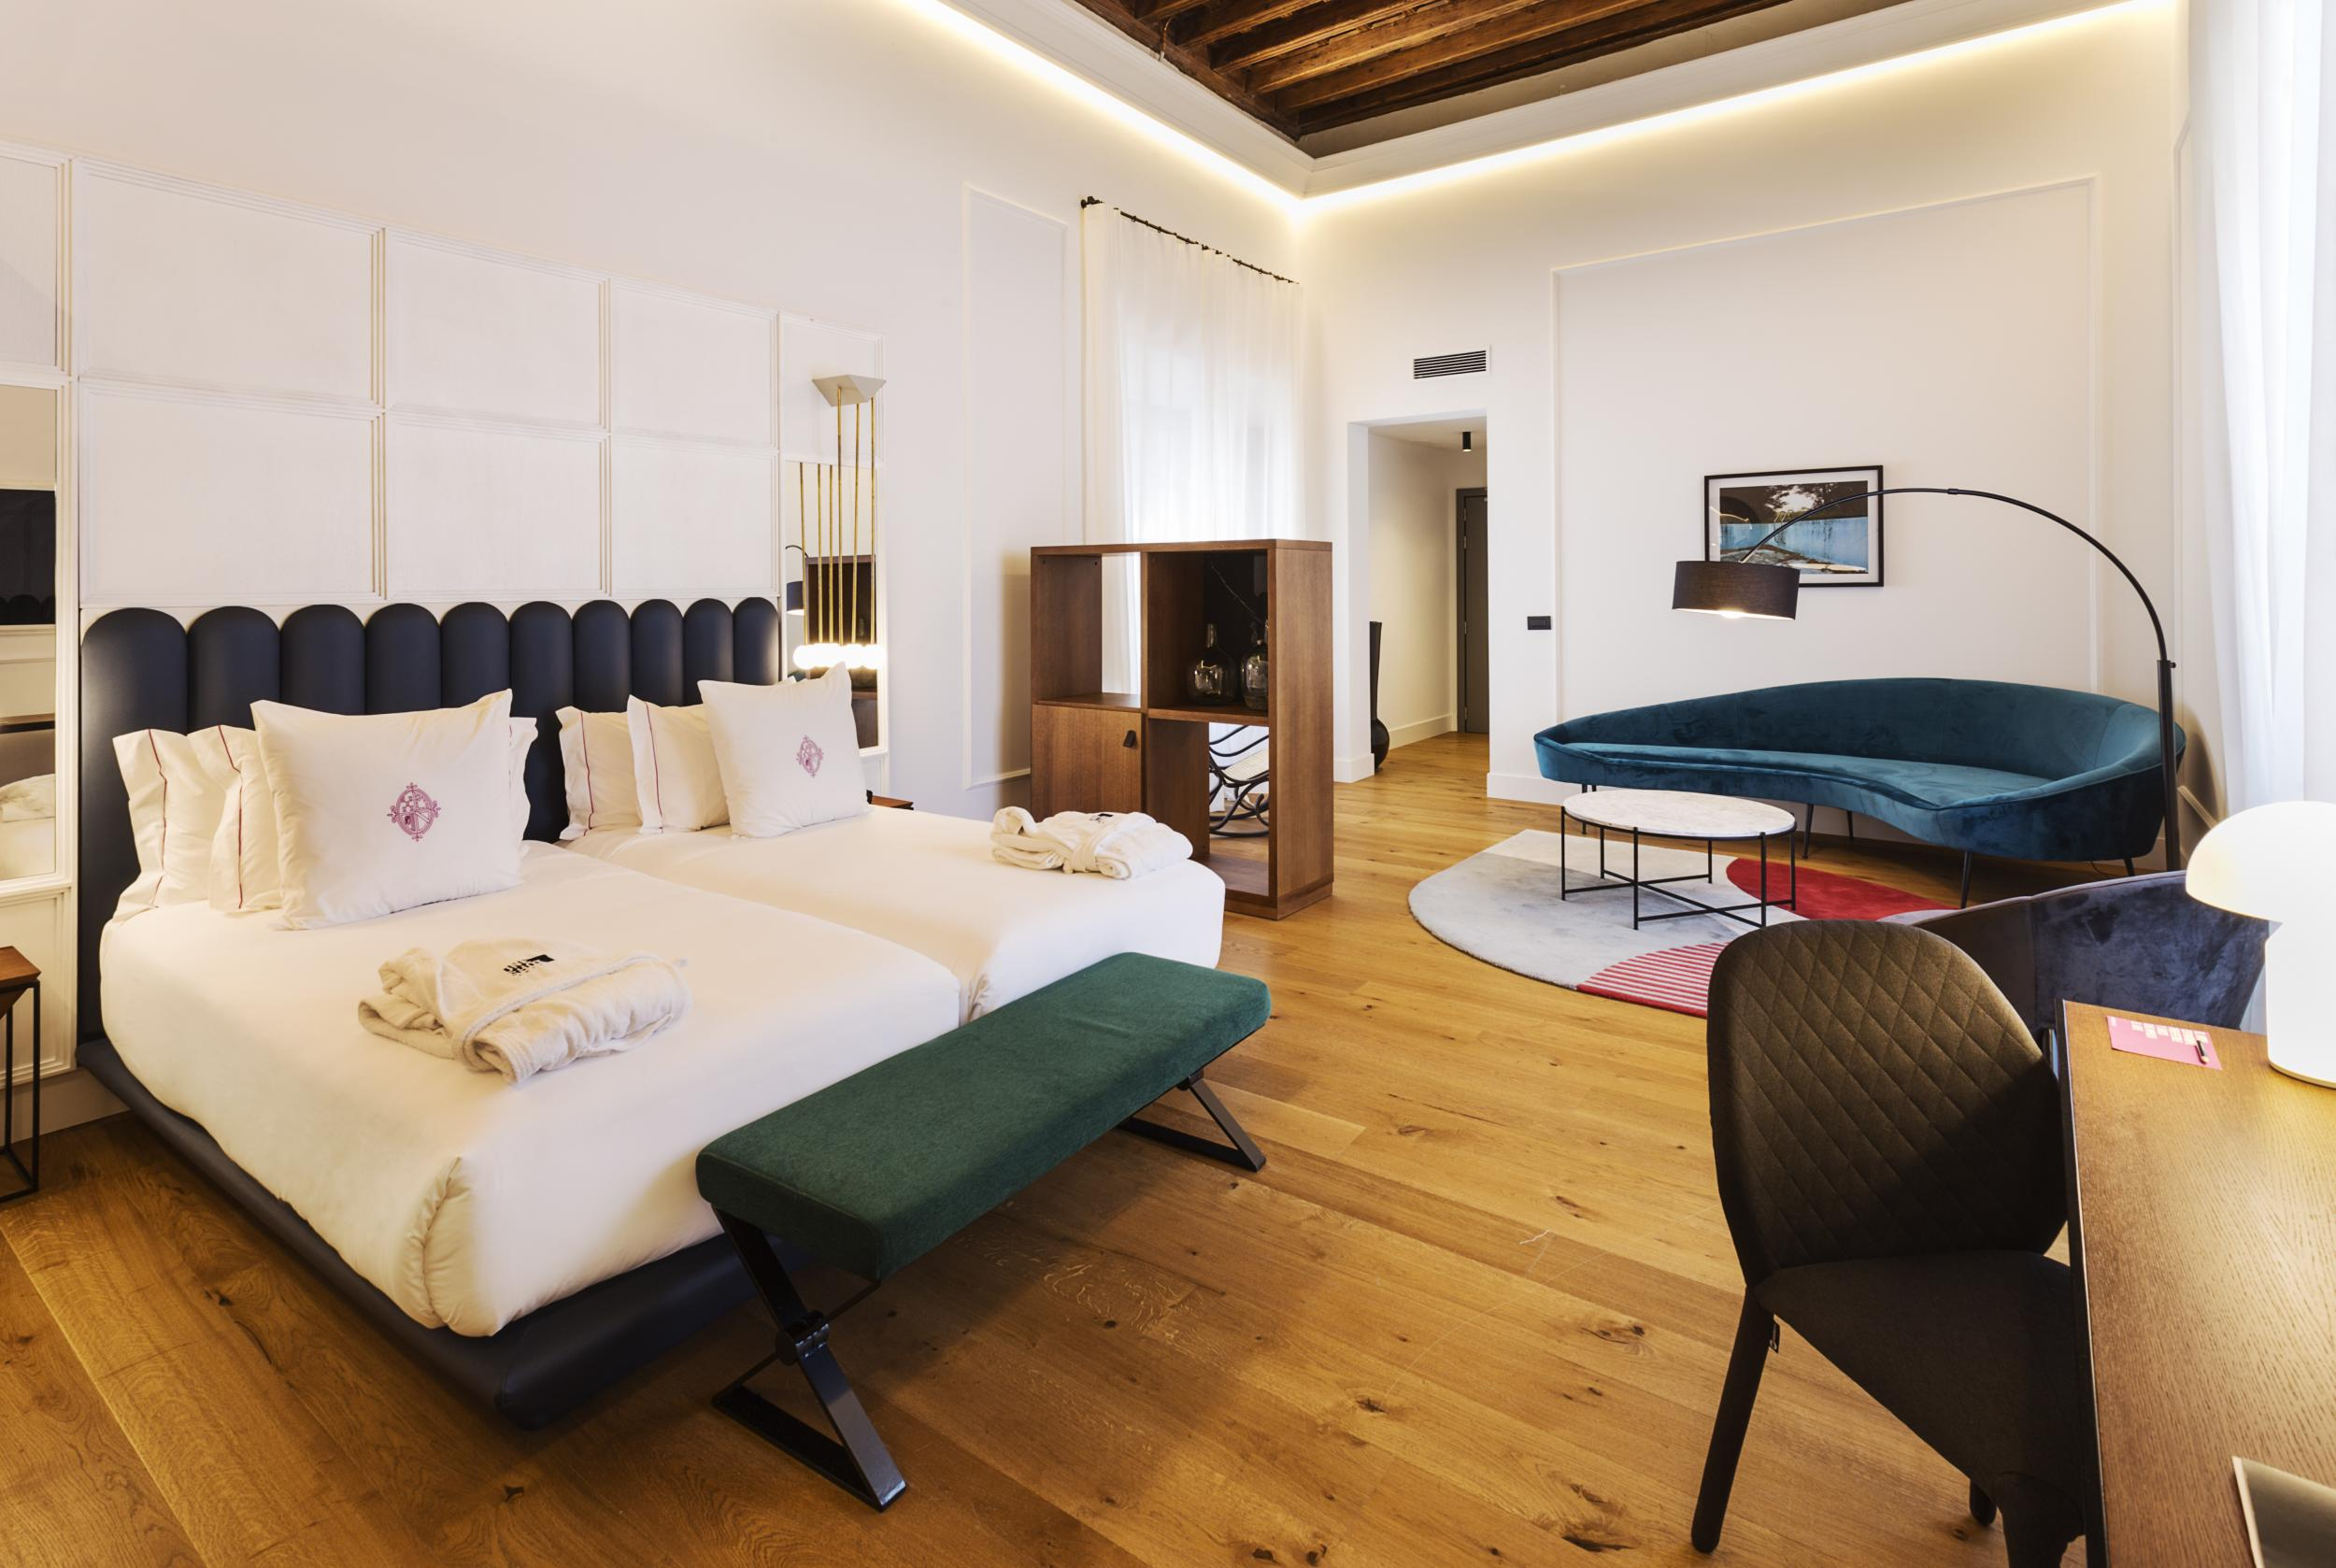 Seville Hotels 10 Of The Best Places To Stay The Independent